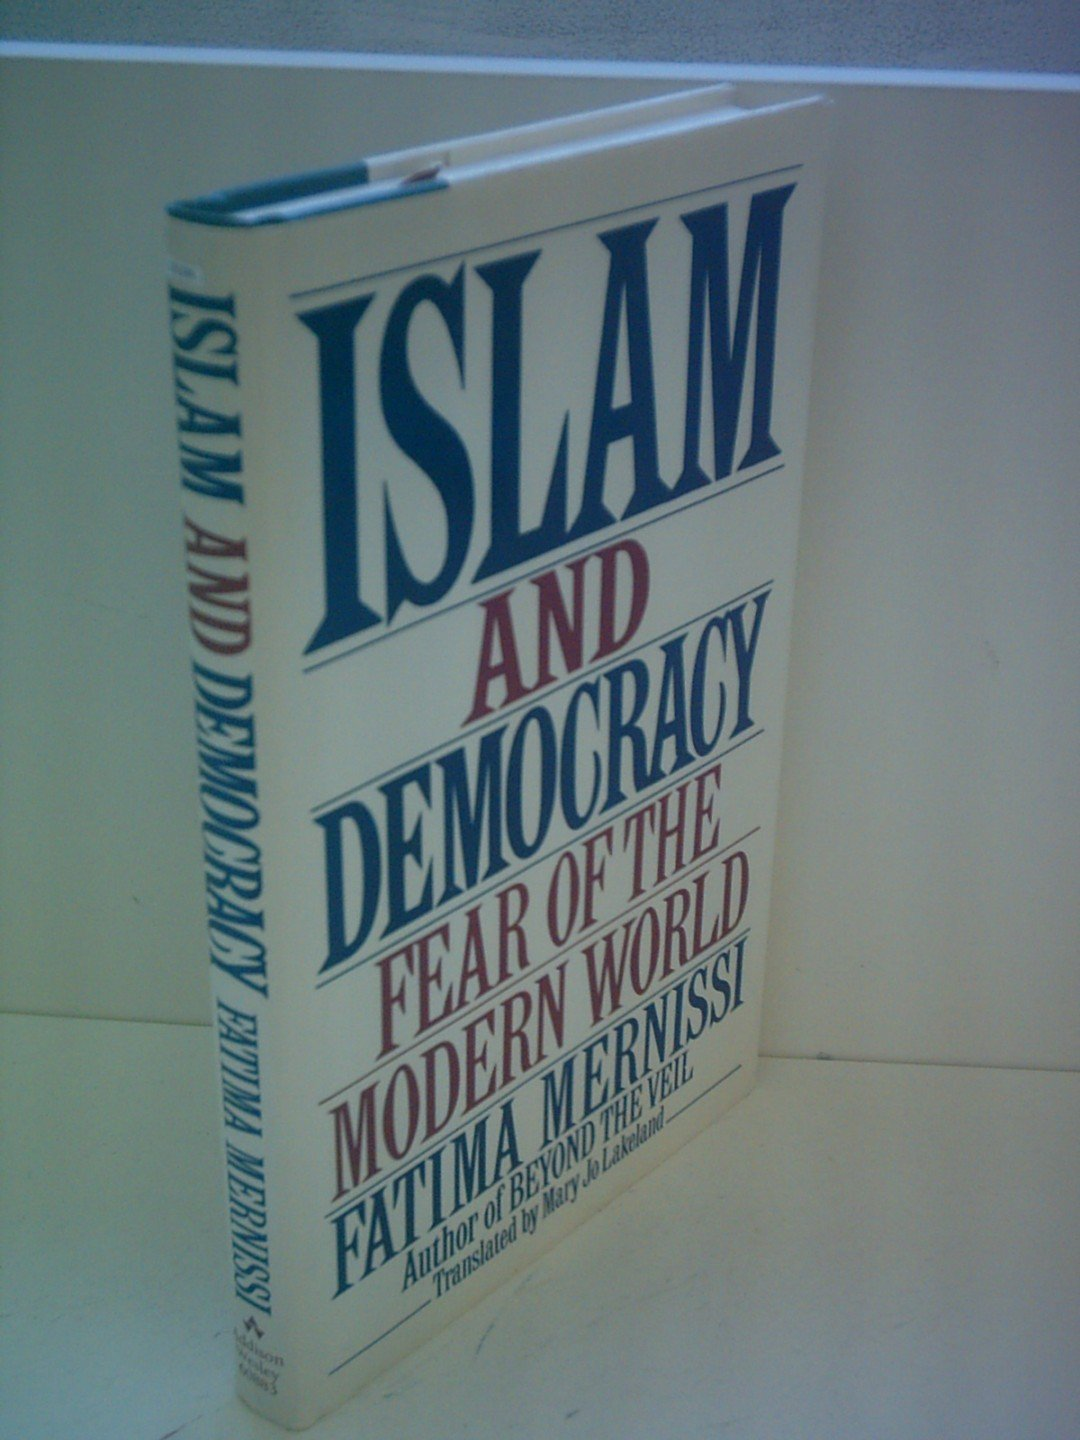 Islam And Democracy: Fear Of The Modern World, Mernissi, Fatima